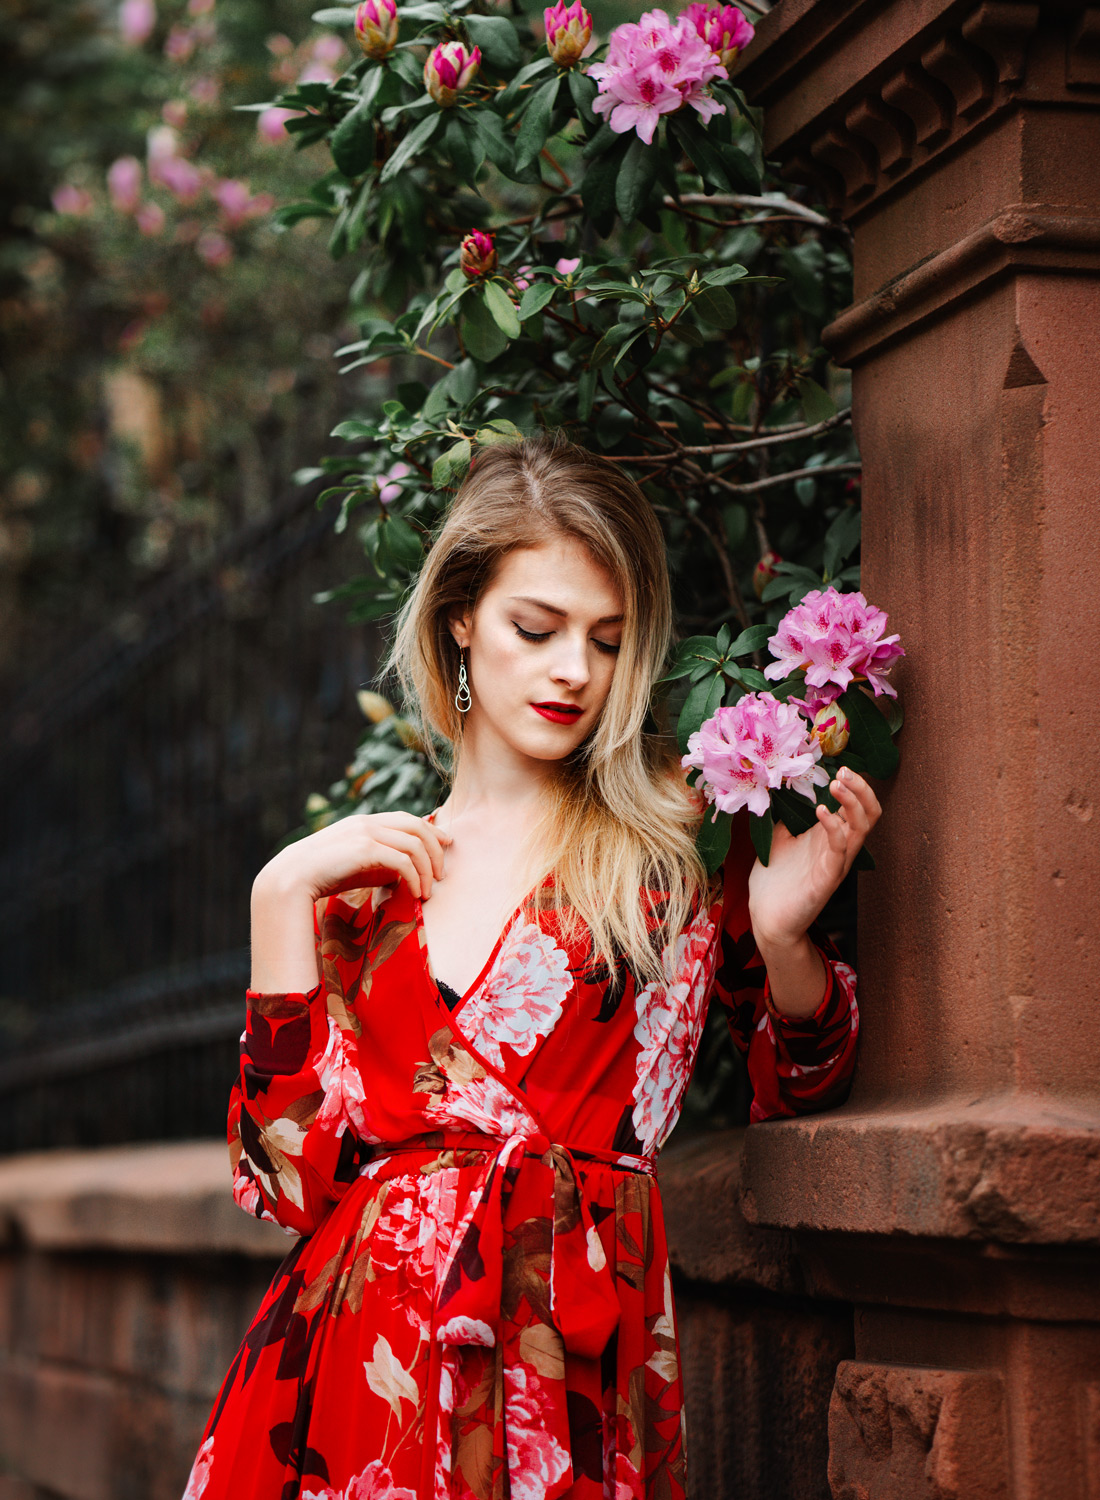 young blonde model woman in red summer dress and pink flowers in a high end fashion photo session in Kaiserslautern germany and ramstein landstuhl kmc area by portrait photographer sarah havens  junge frau in rotem sommerkleid in einem mode shooting in Kaiserslautern, Rheinland-pfalz.